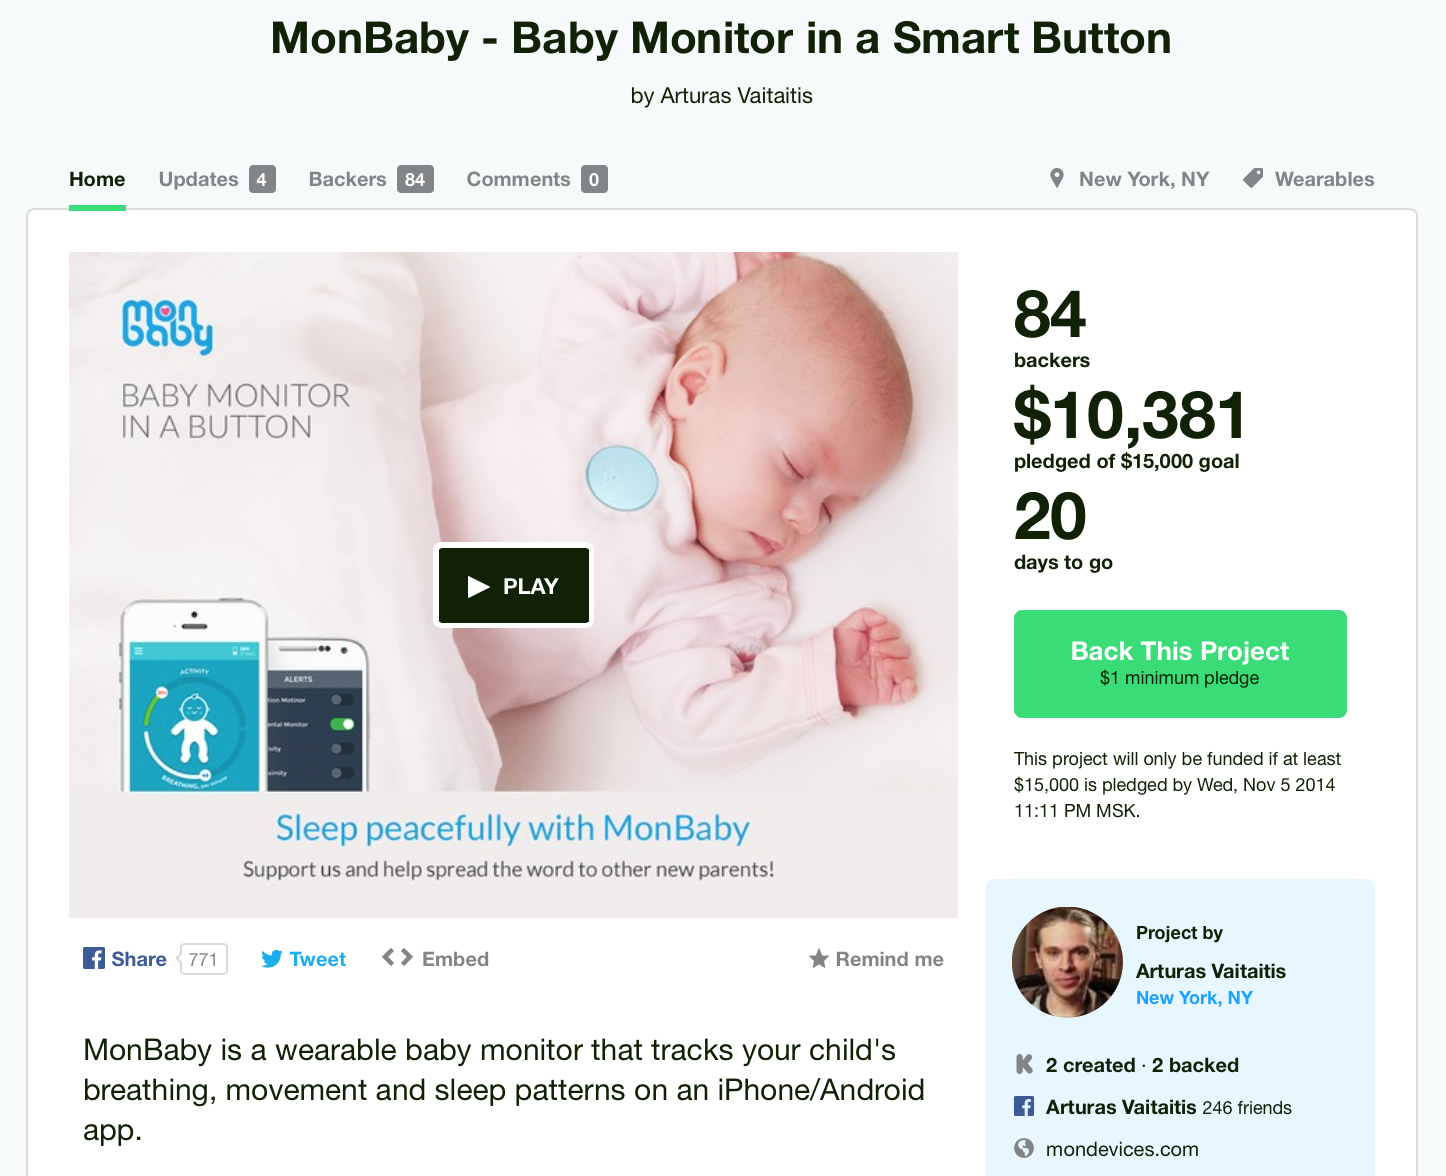 Monbaby project